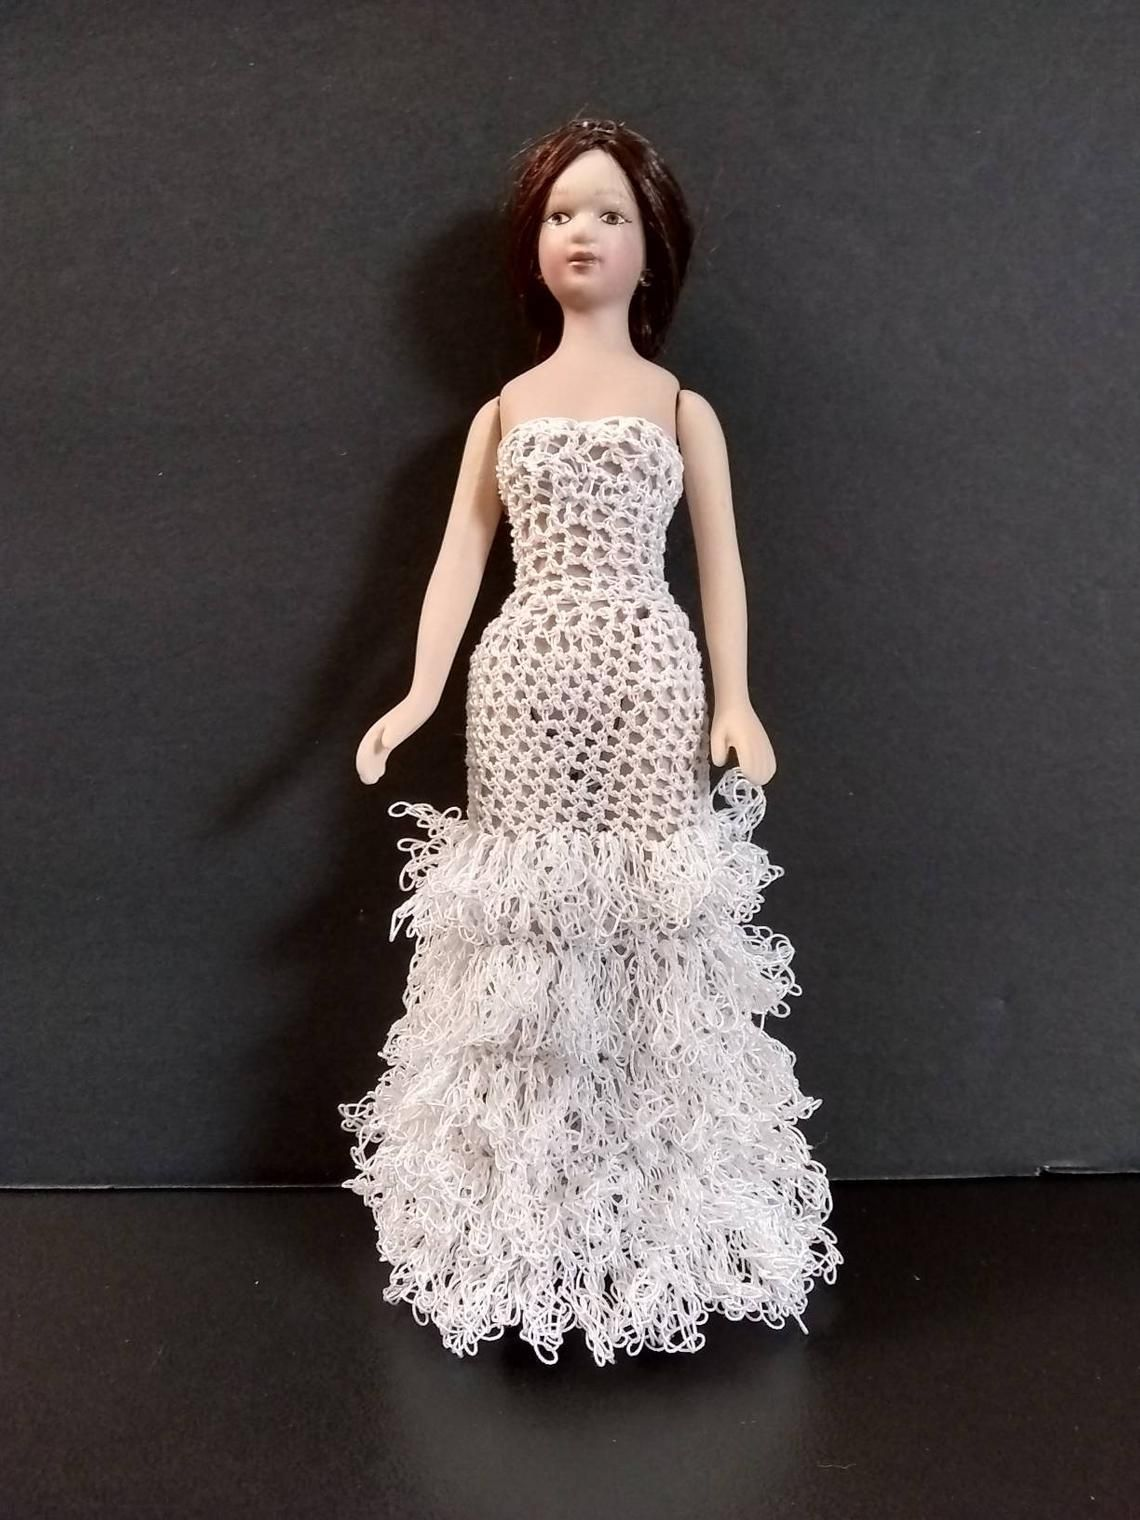 112 white wedding doll dress or yellow bridesmaid gown